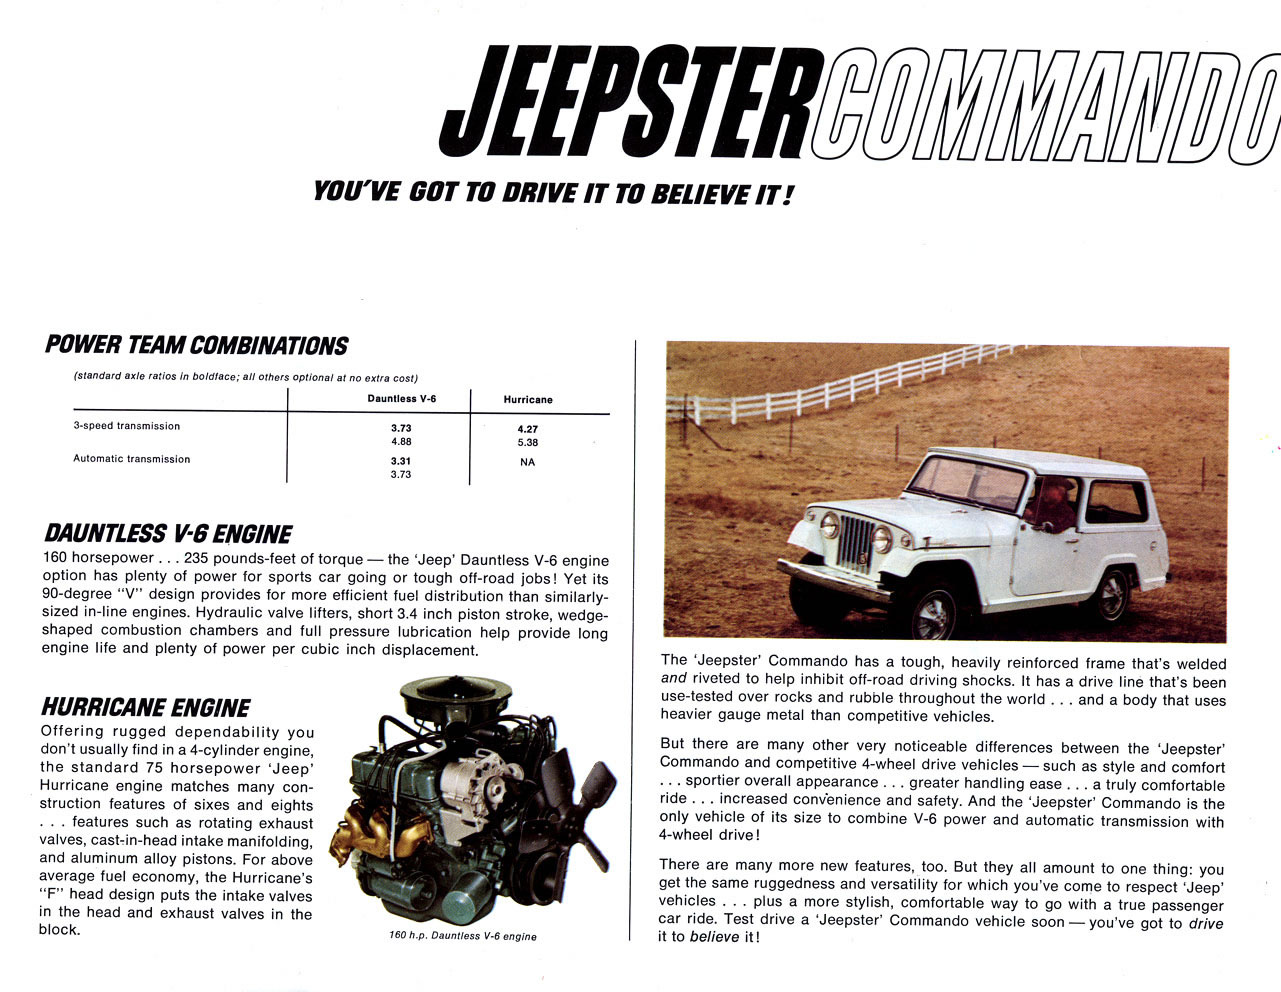 All Terrain Tires >> 1966 Jeepster Commando Brochure / 1966 Jeep Jeepster Commando-11.jpg